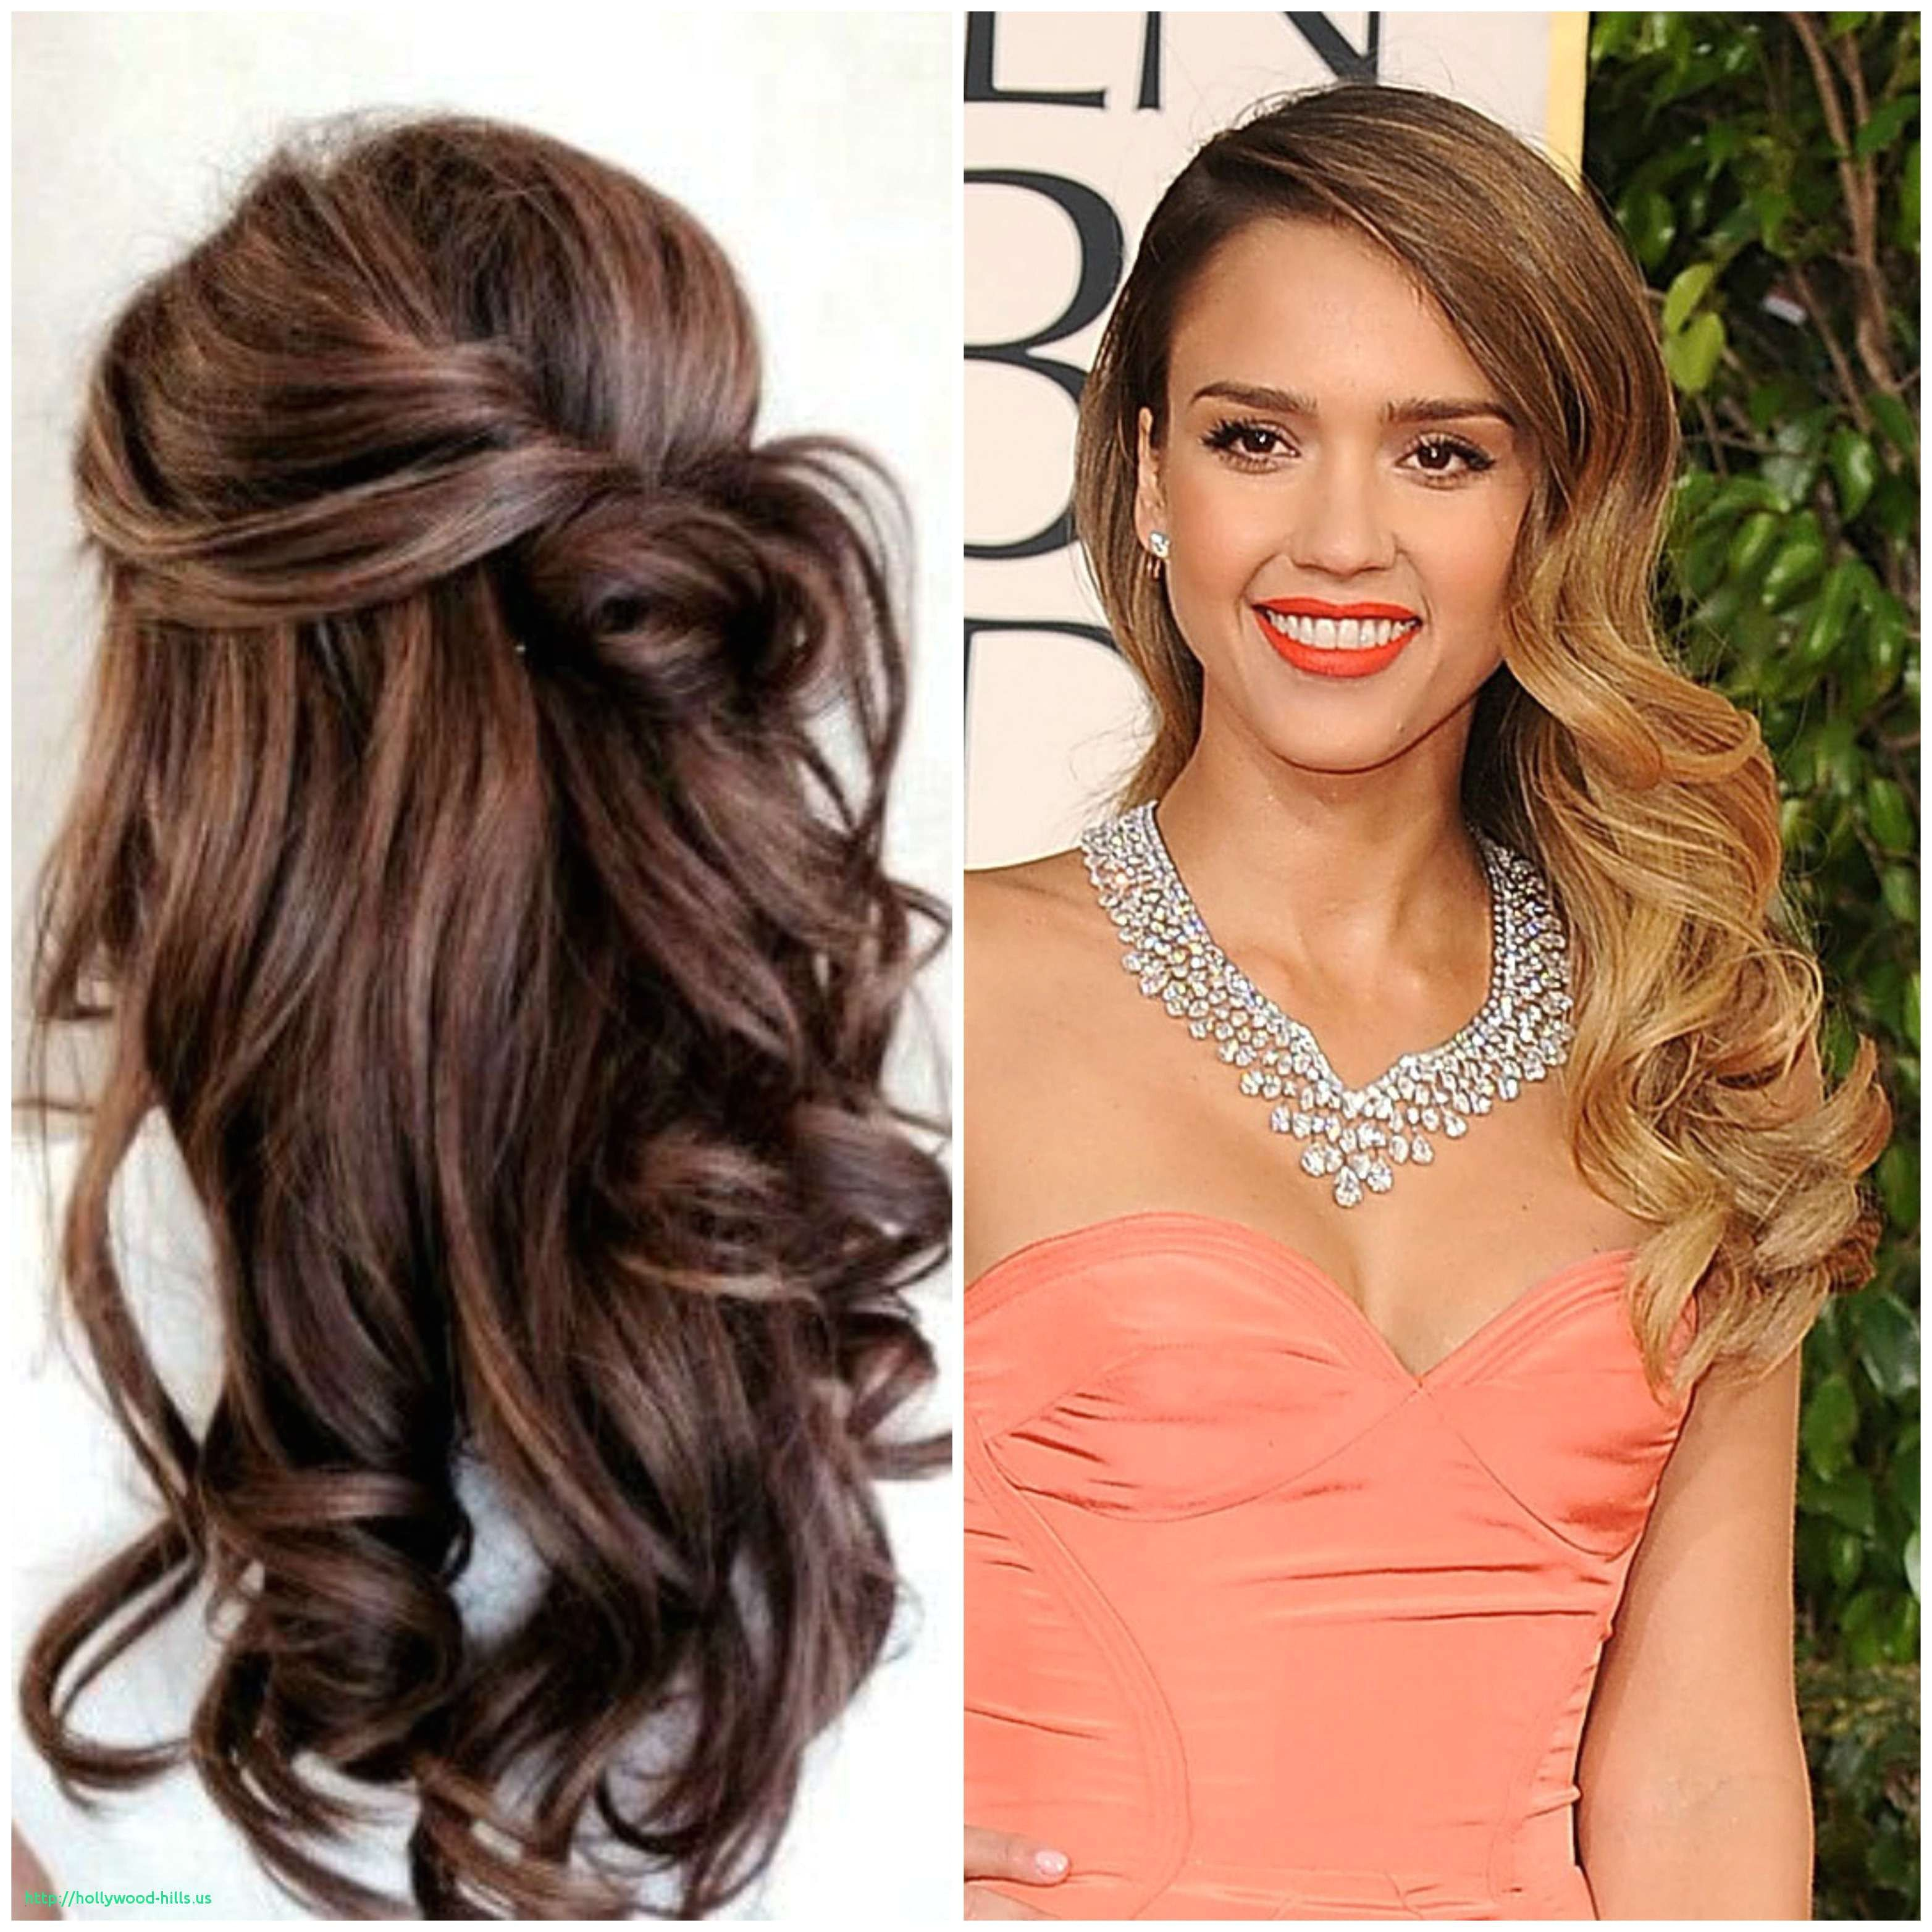 Cool Hairstyles for Short Hair Girl Luxury New Simple and Easy Hairstyles Lovely Quick Hairstyles for